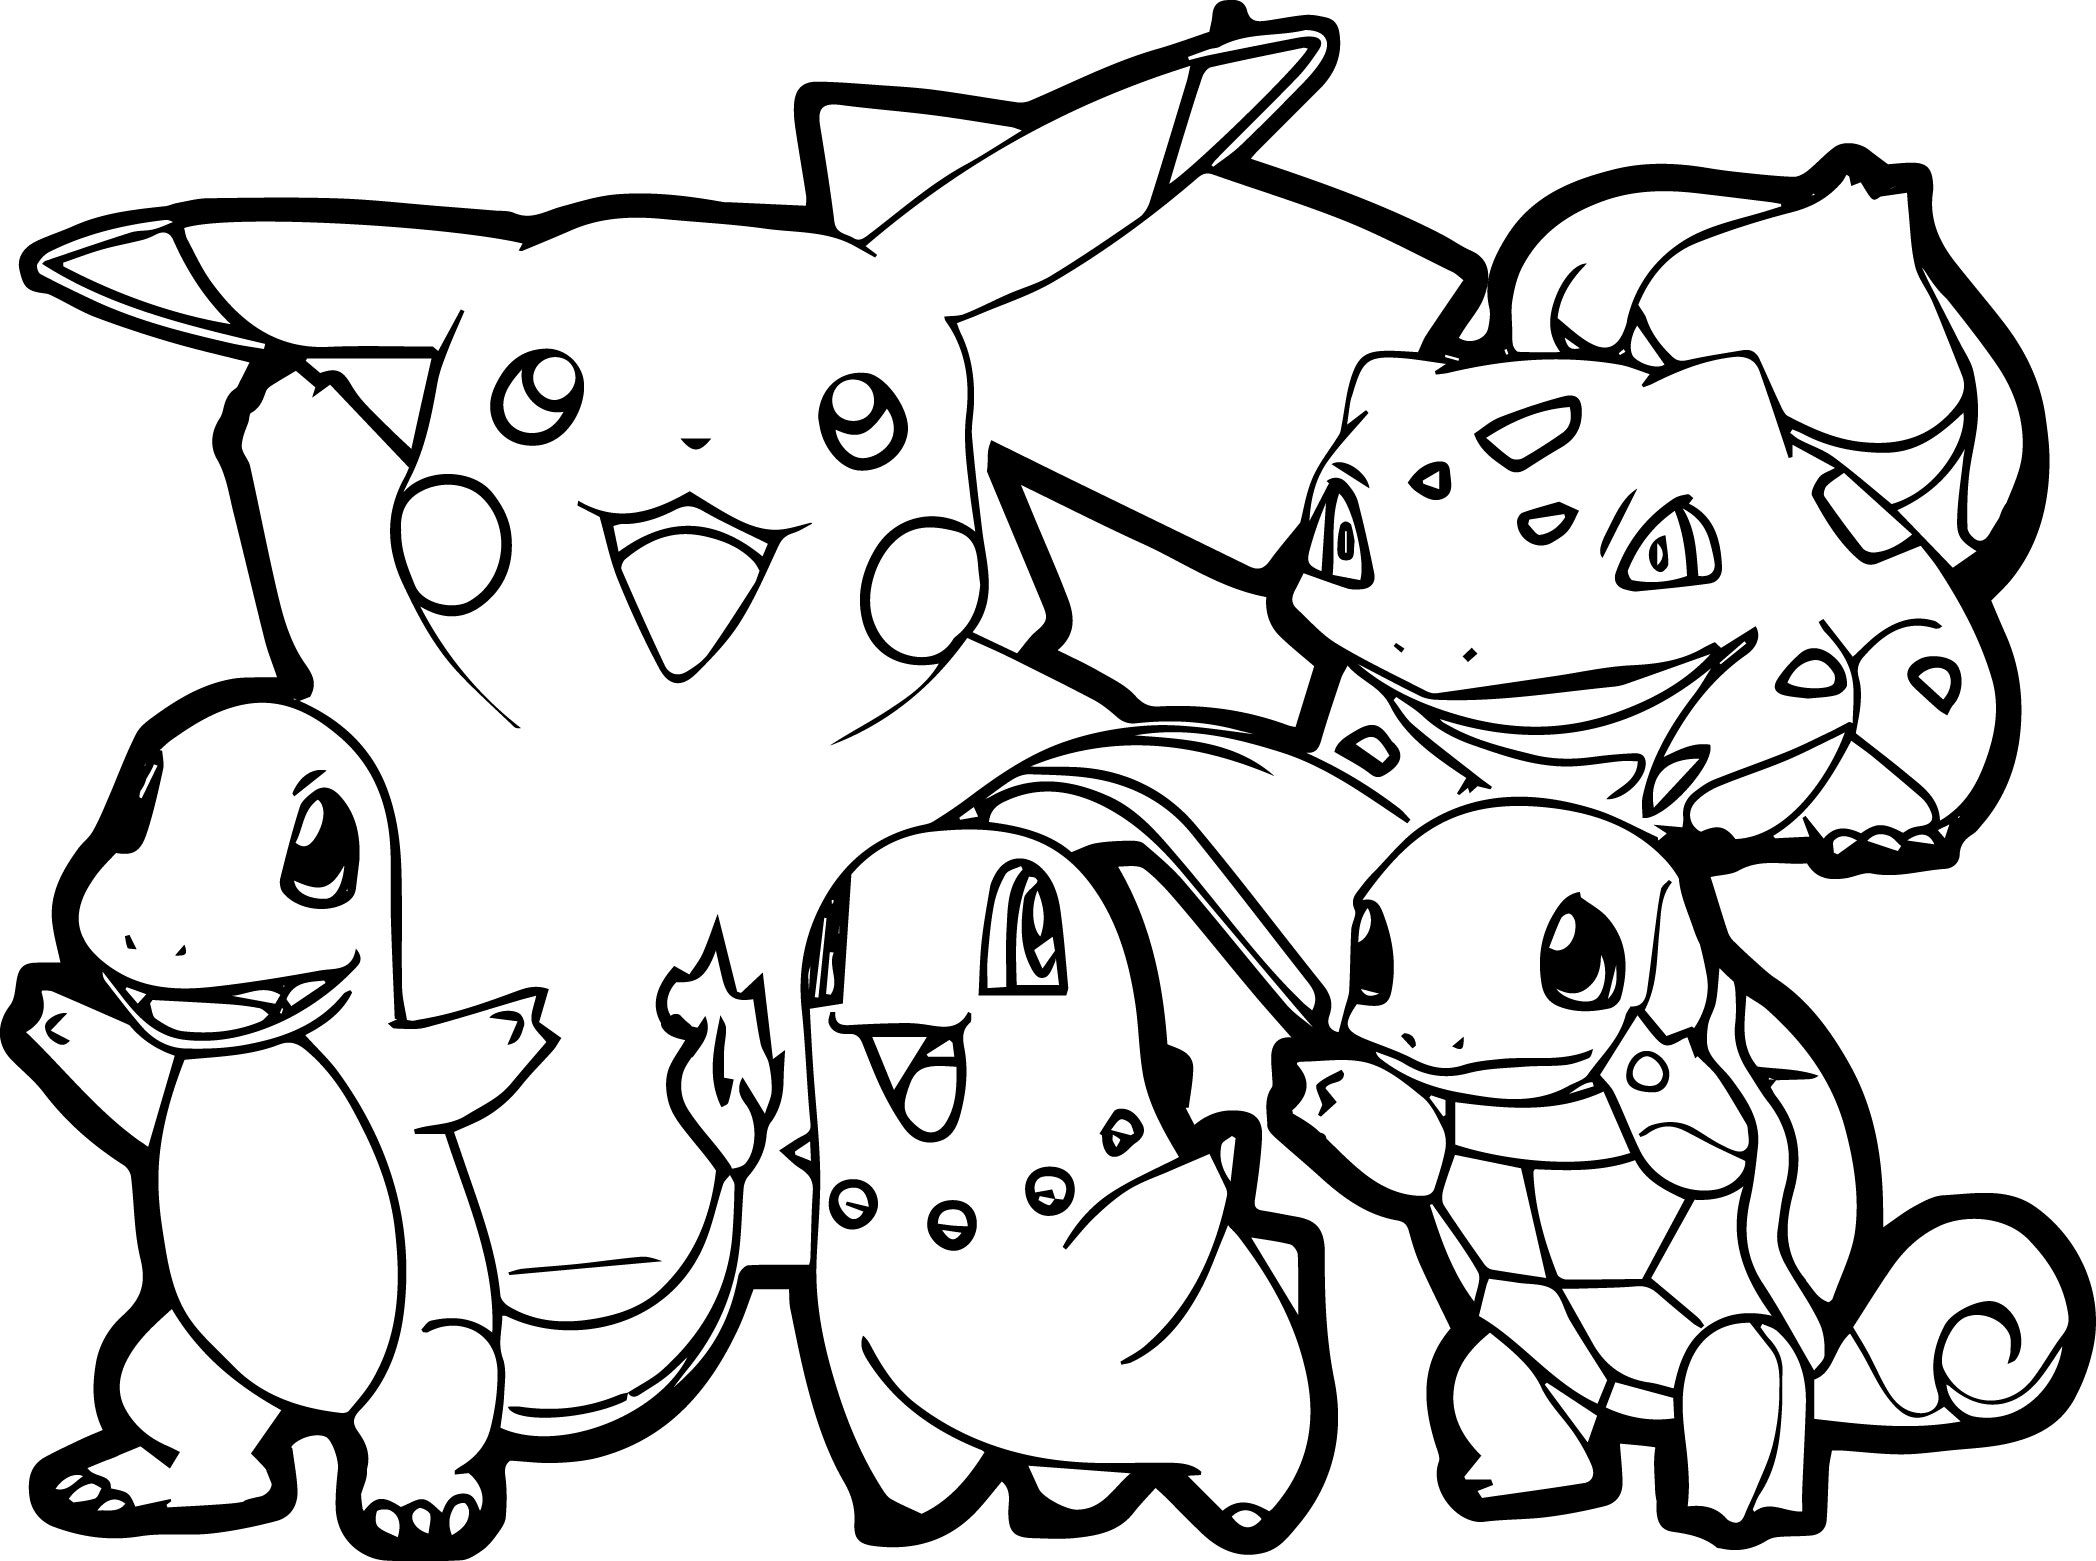 pokemon coloring sheets 55 pokemon coloring pages for kids coloring pokemon sheets